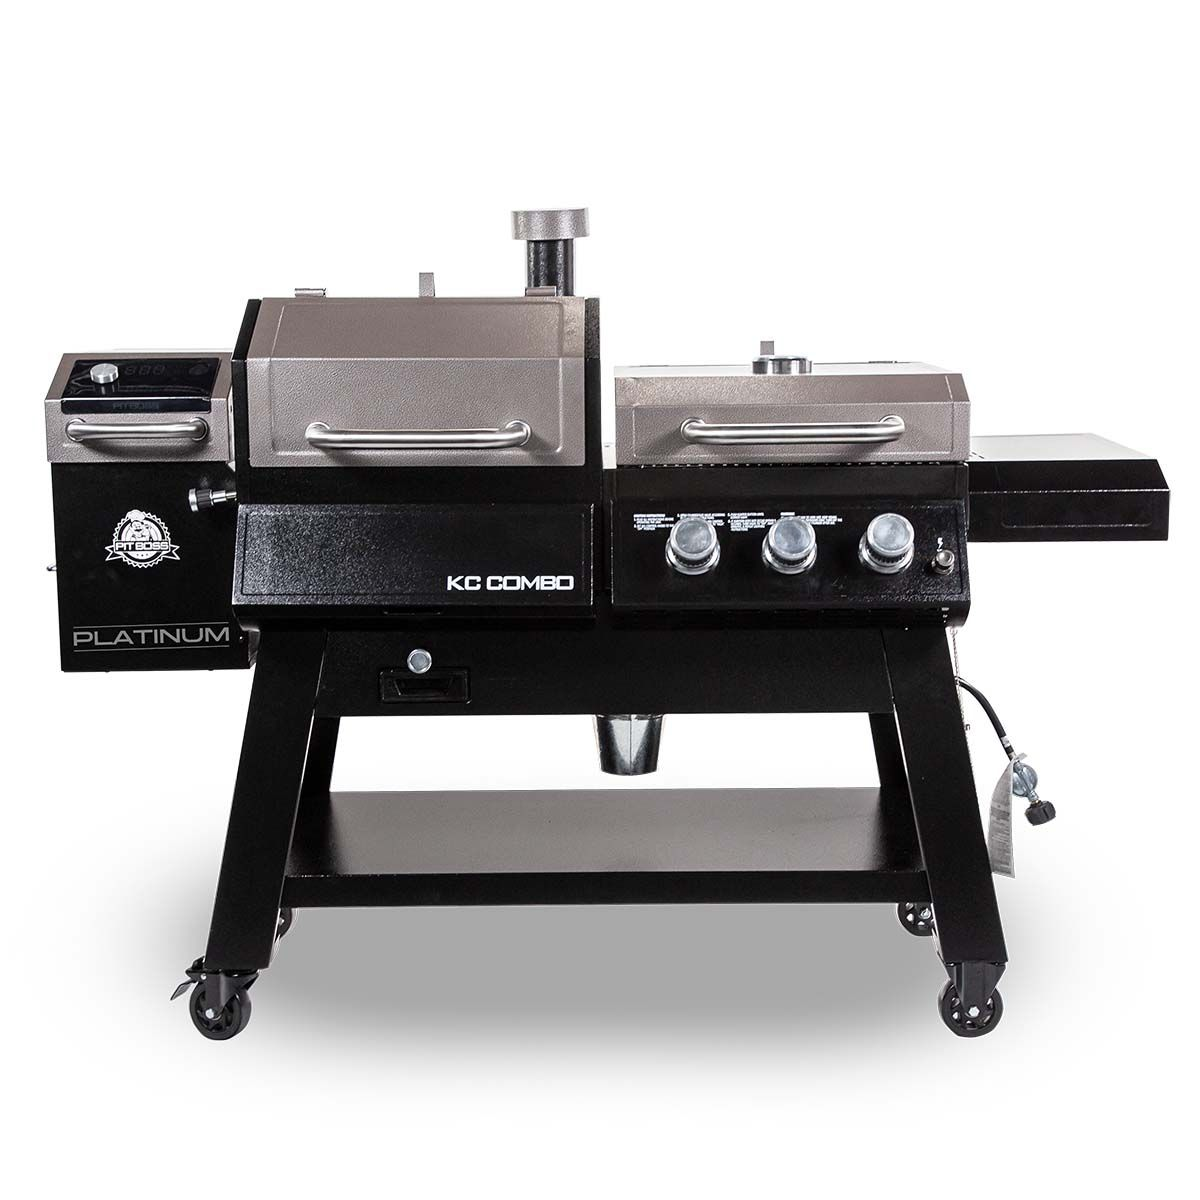 Pit Boss Kc Combo Platinum Series Wifi And Bluetooth Wood Pellet And Gas Grill Walmart Com In 2020 Wood Pellet Grills Gas Grill Wood Pellets